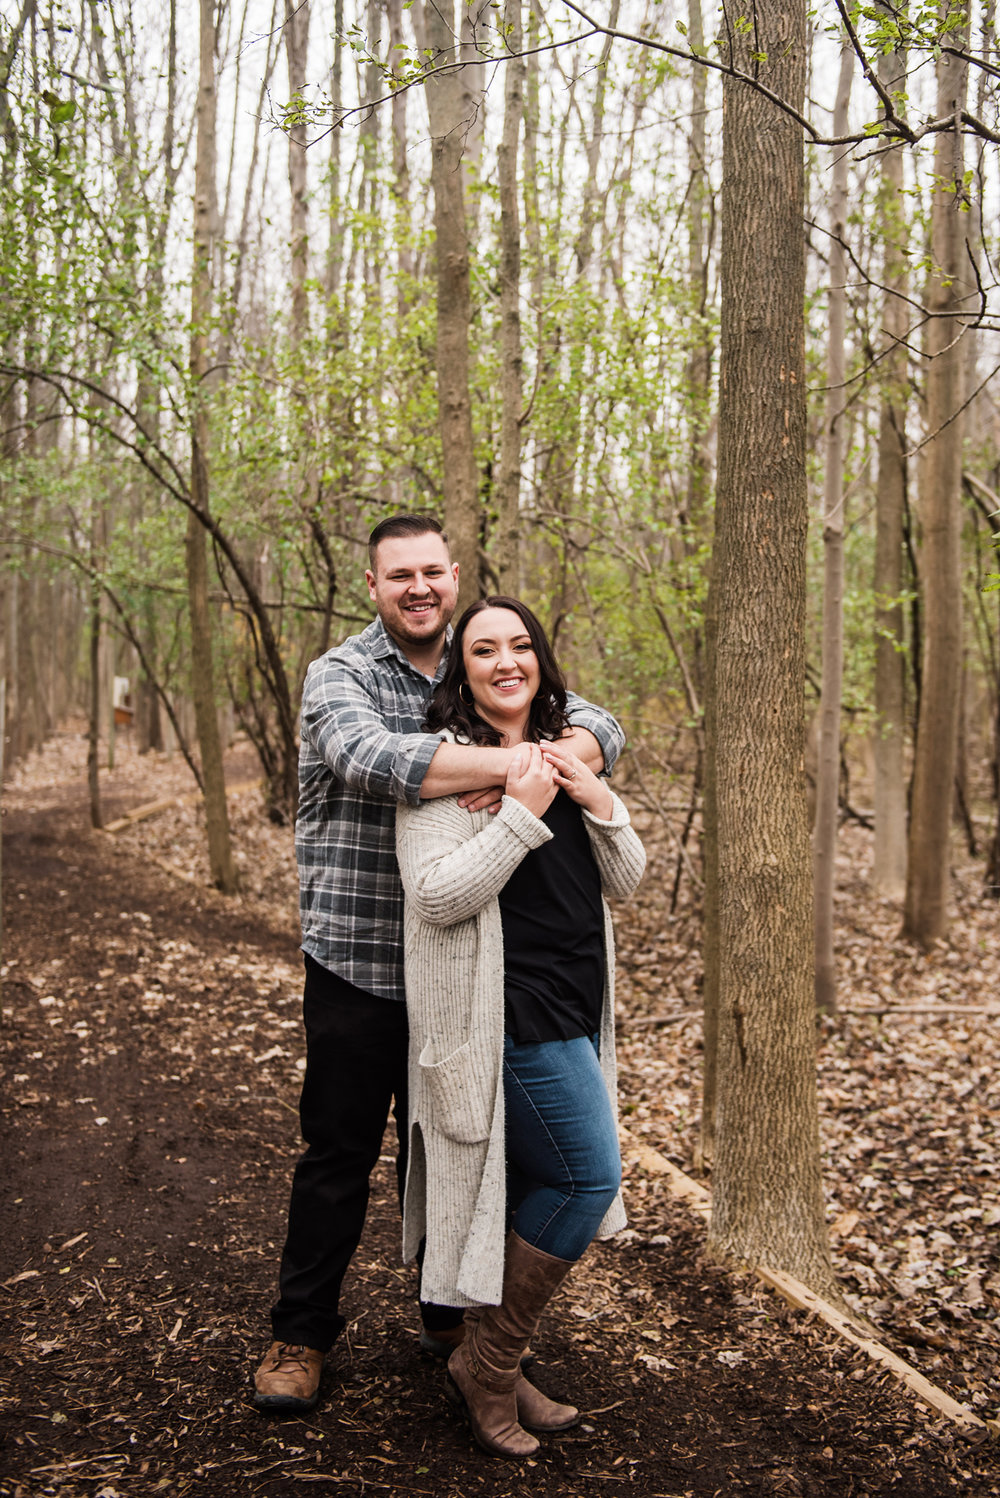 Tinker_Nature_Park_Rochester_Engagement_Session_JILL_STUDIO_Rochester_NY_Photographer_DSC_0486.jpg